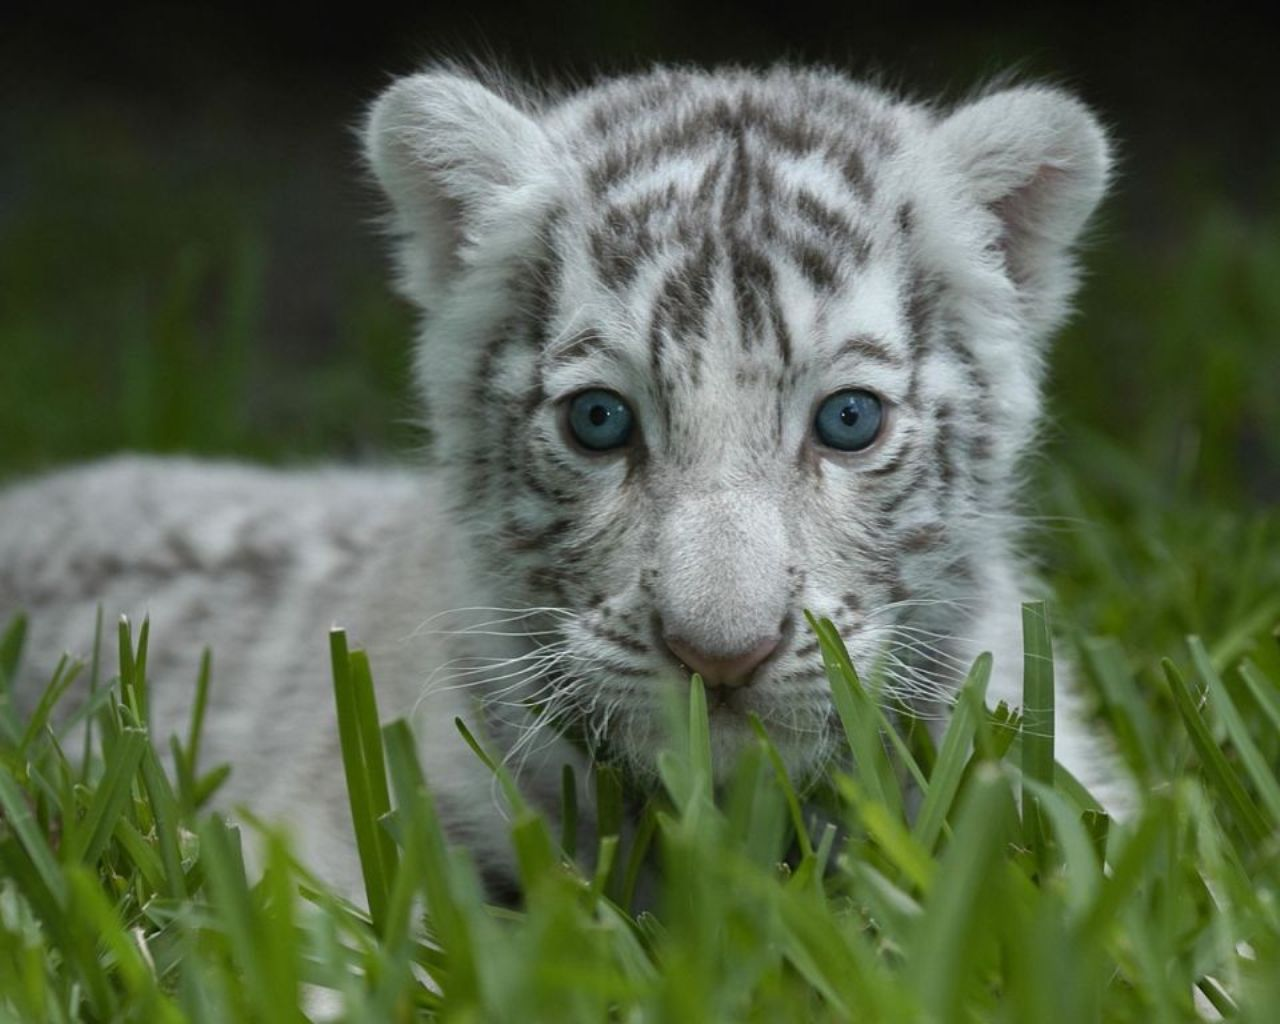 White tiger cub pictures on your desktop and wallpapers wallpapers 1280x1024